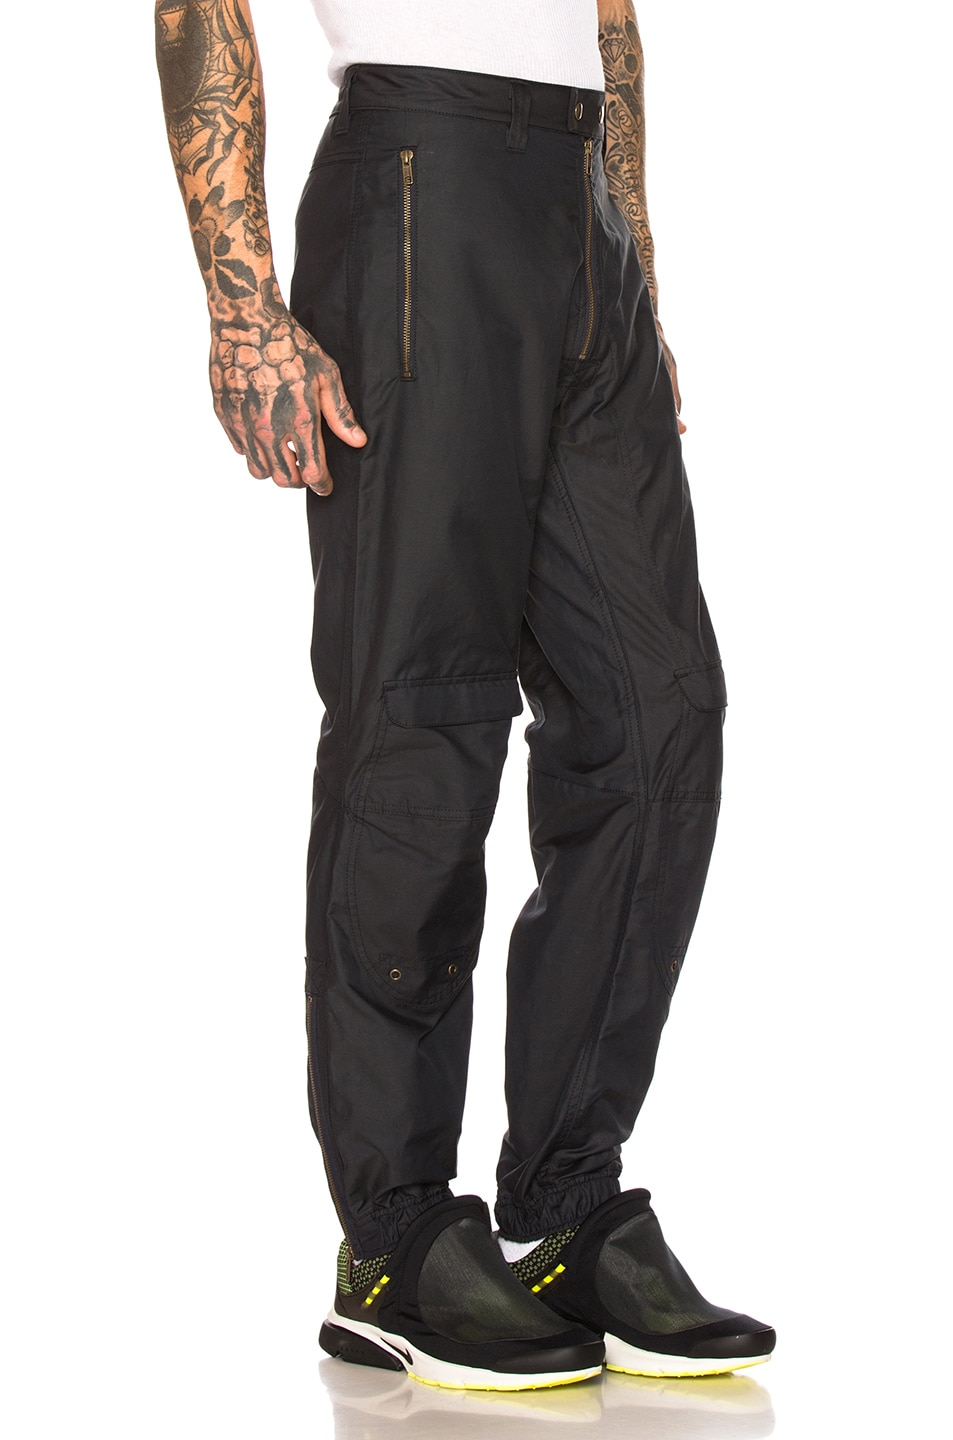 Gmbh Pants Cargo Exposed Zipper Trousers